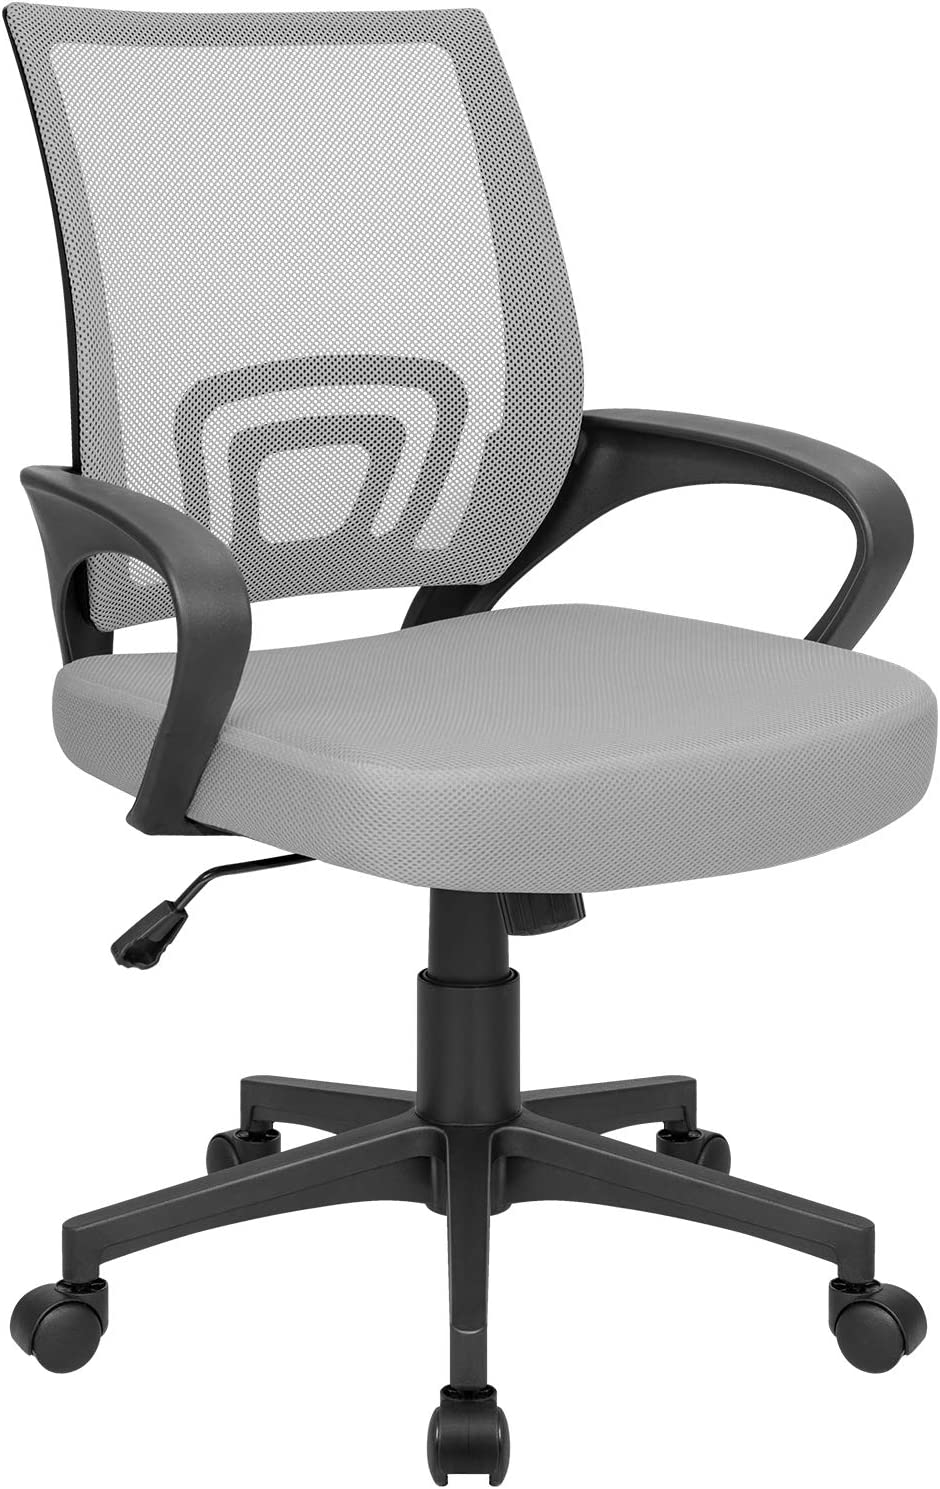 Homall Office Mid Back Computer Ergonomic Desk Chair, Grey